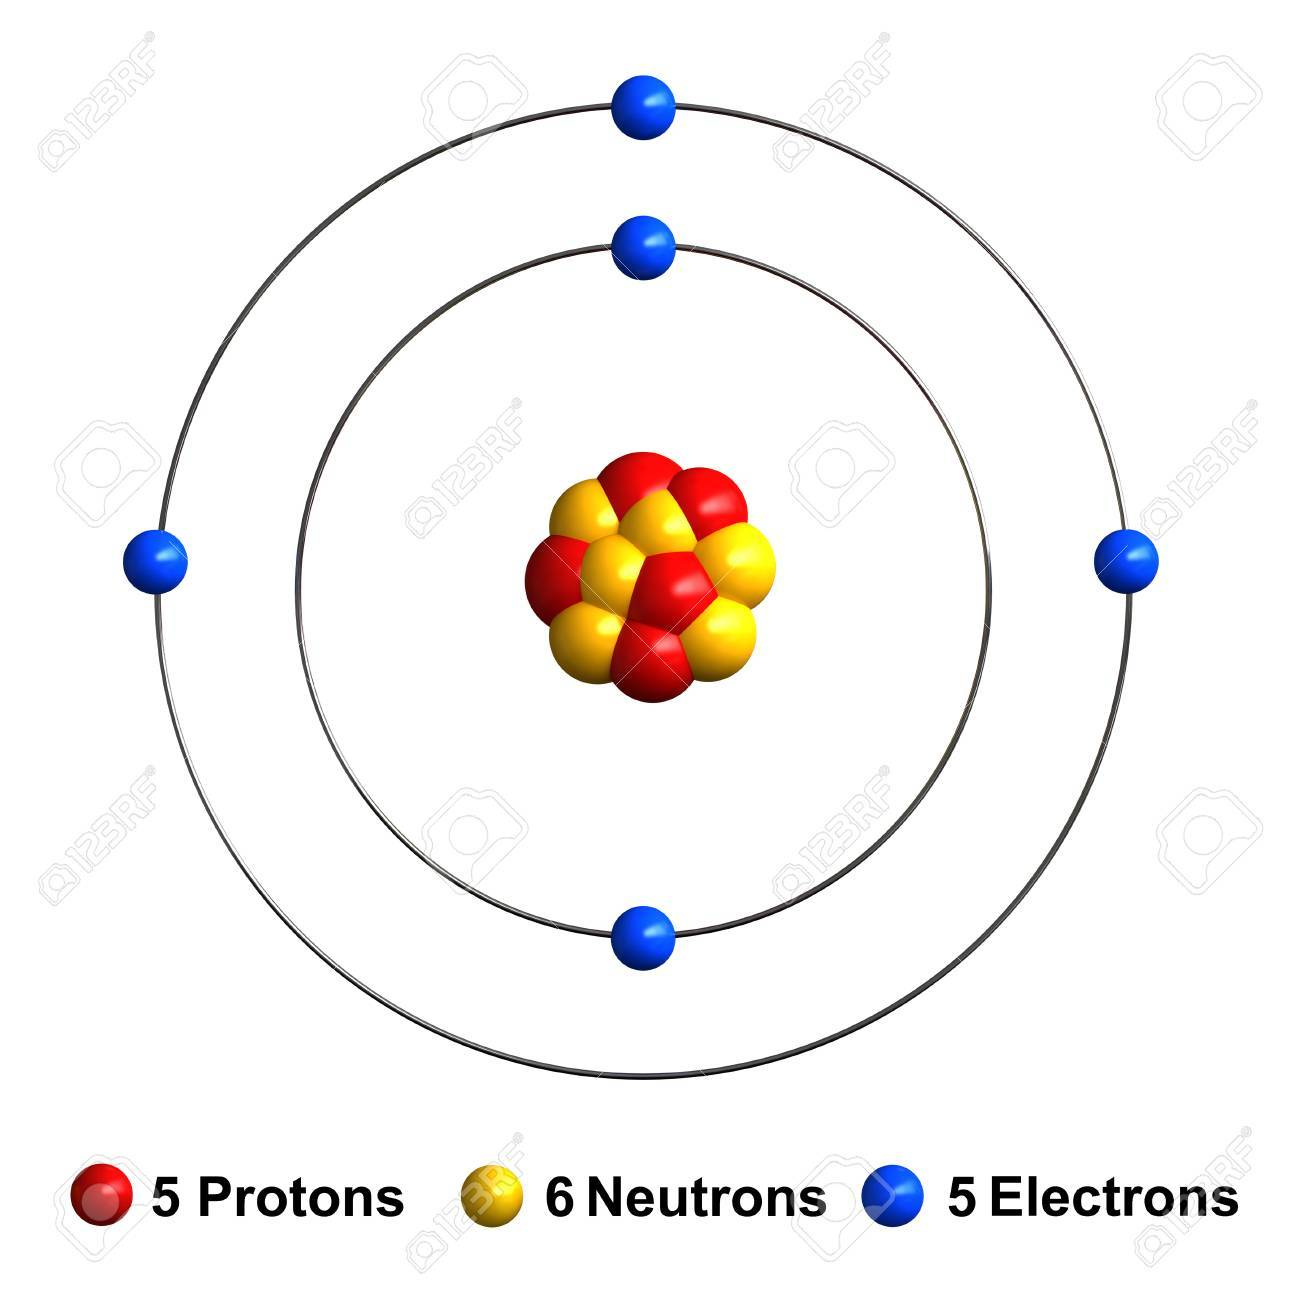 Boron atom diagram product wiring diagrams 3d render of atom structure of boron isolated over white background rh 123rf com neon atom diagram boron atom model project ccuart Image collections